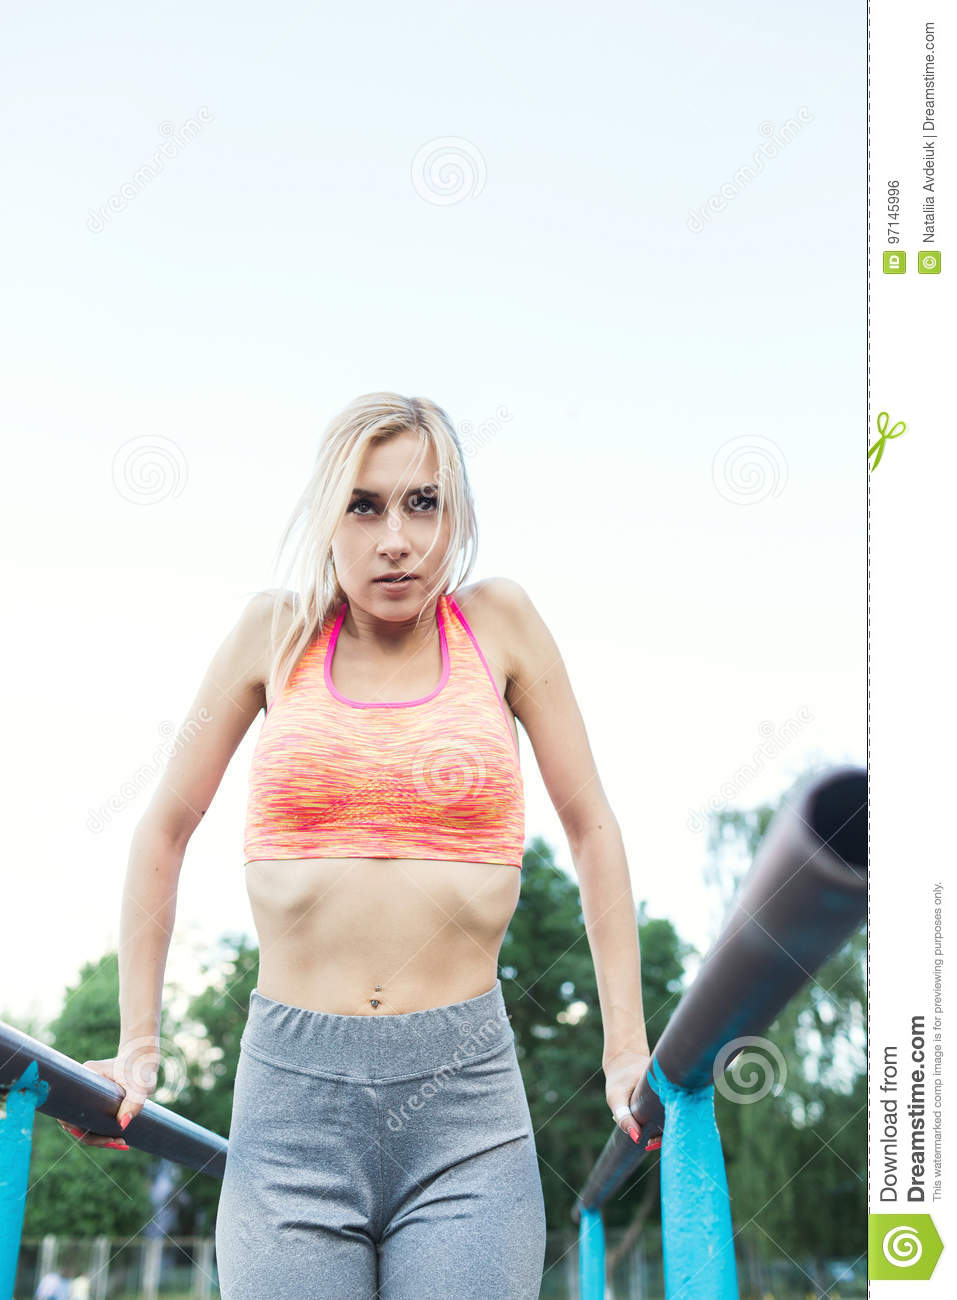 c919a802c70c7 Woman doing lifting up on the gym bar. young fitness girl pulls up on street